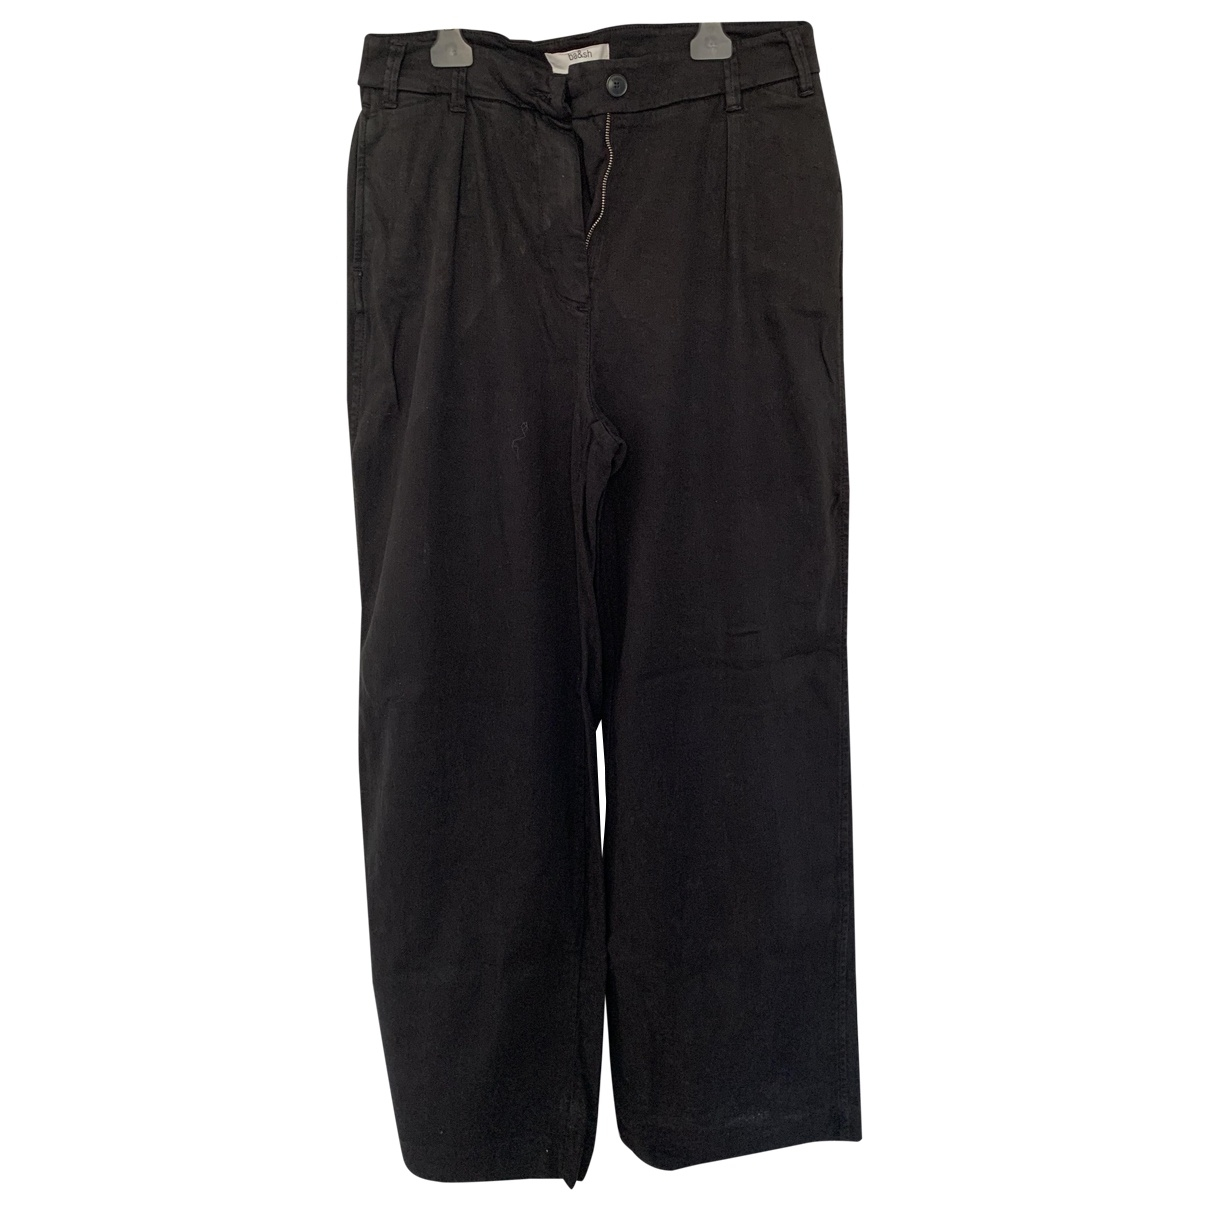 Ba&sh Fall Winter 2019 Black Linen Trousers for Women 1 0-5